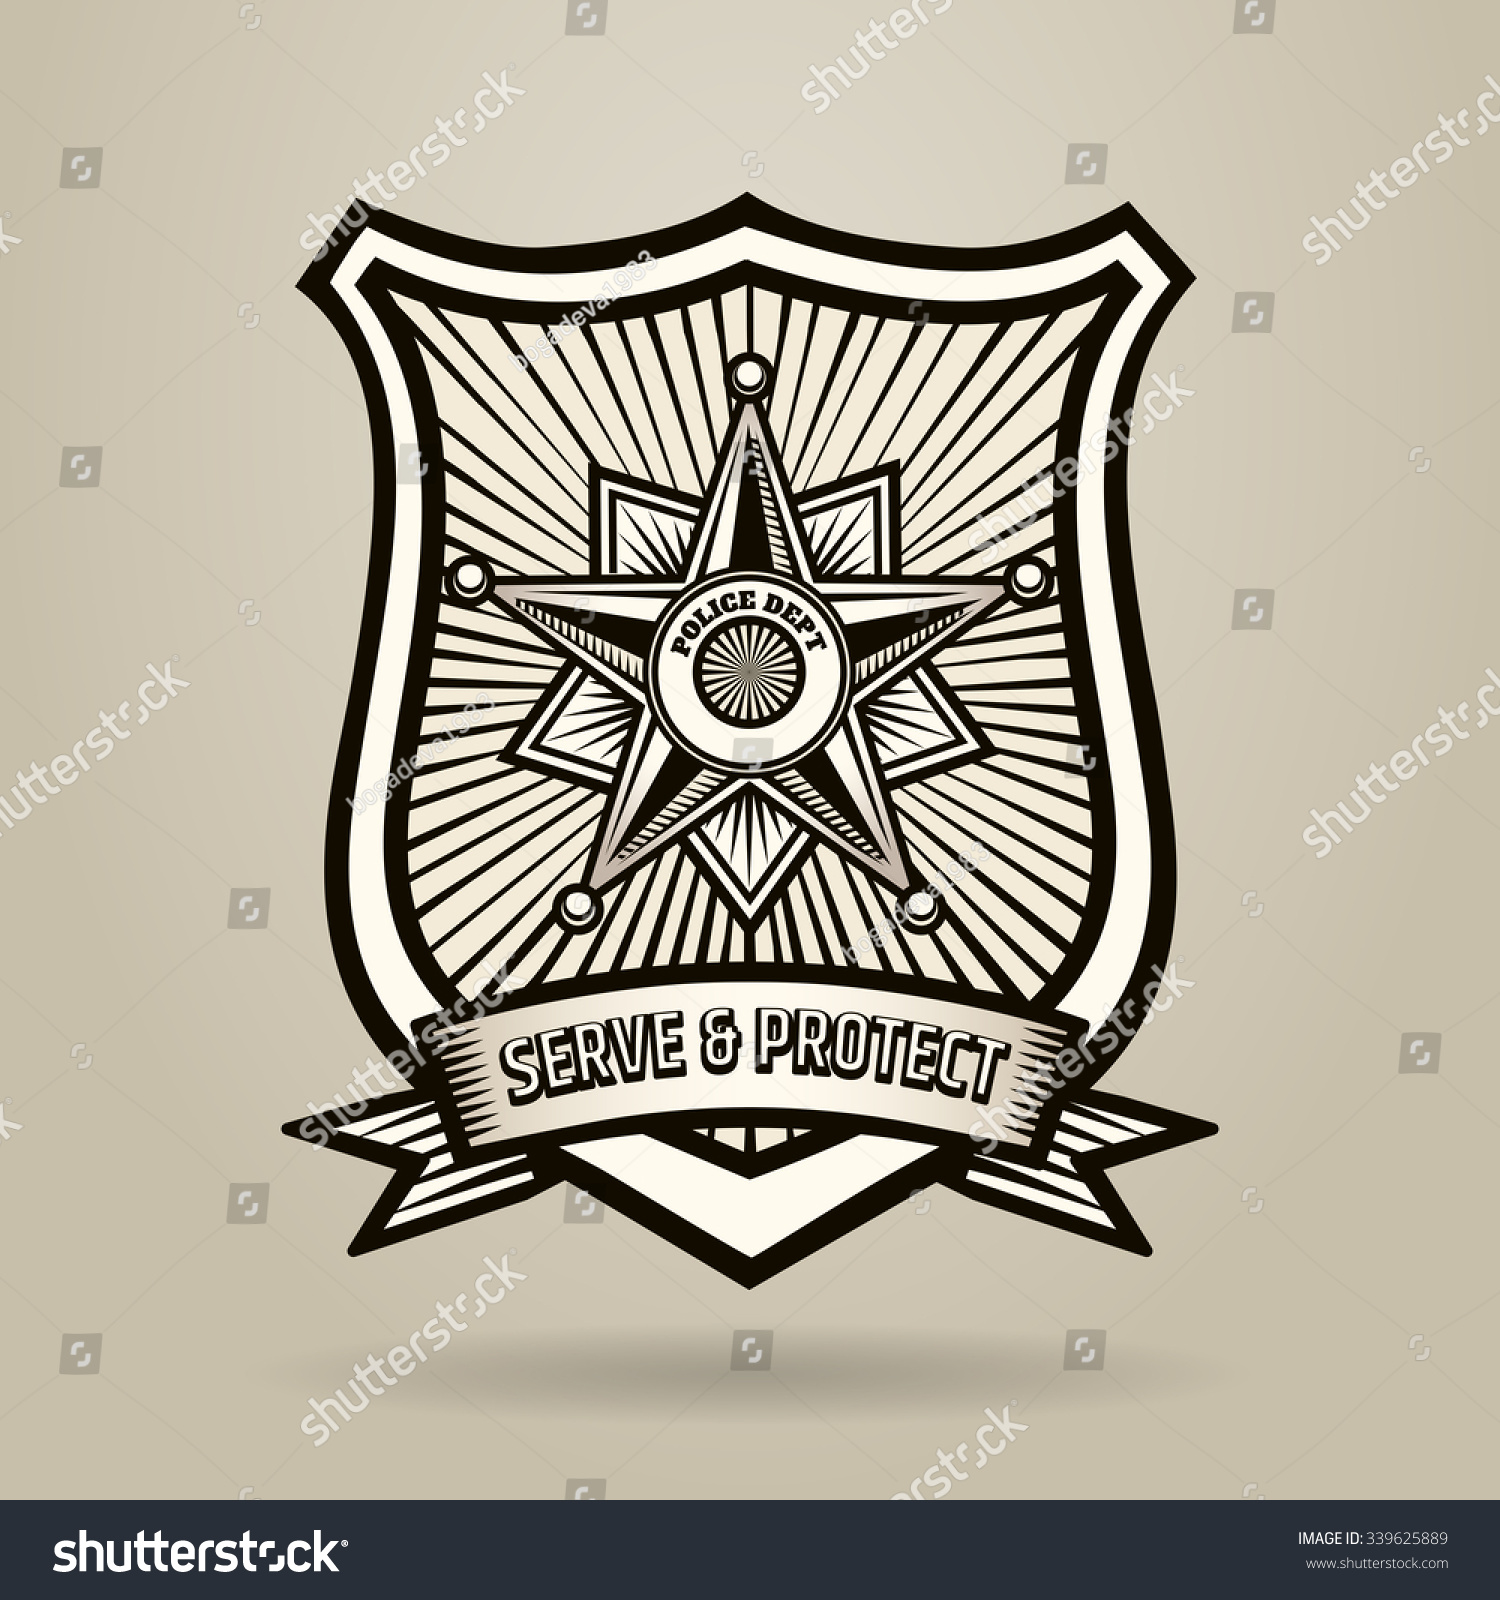 police badge wording serve protect illustration stock vector